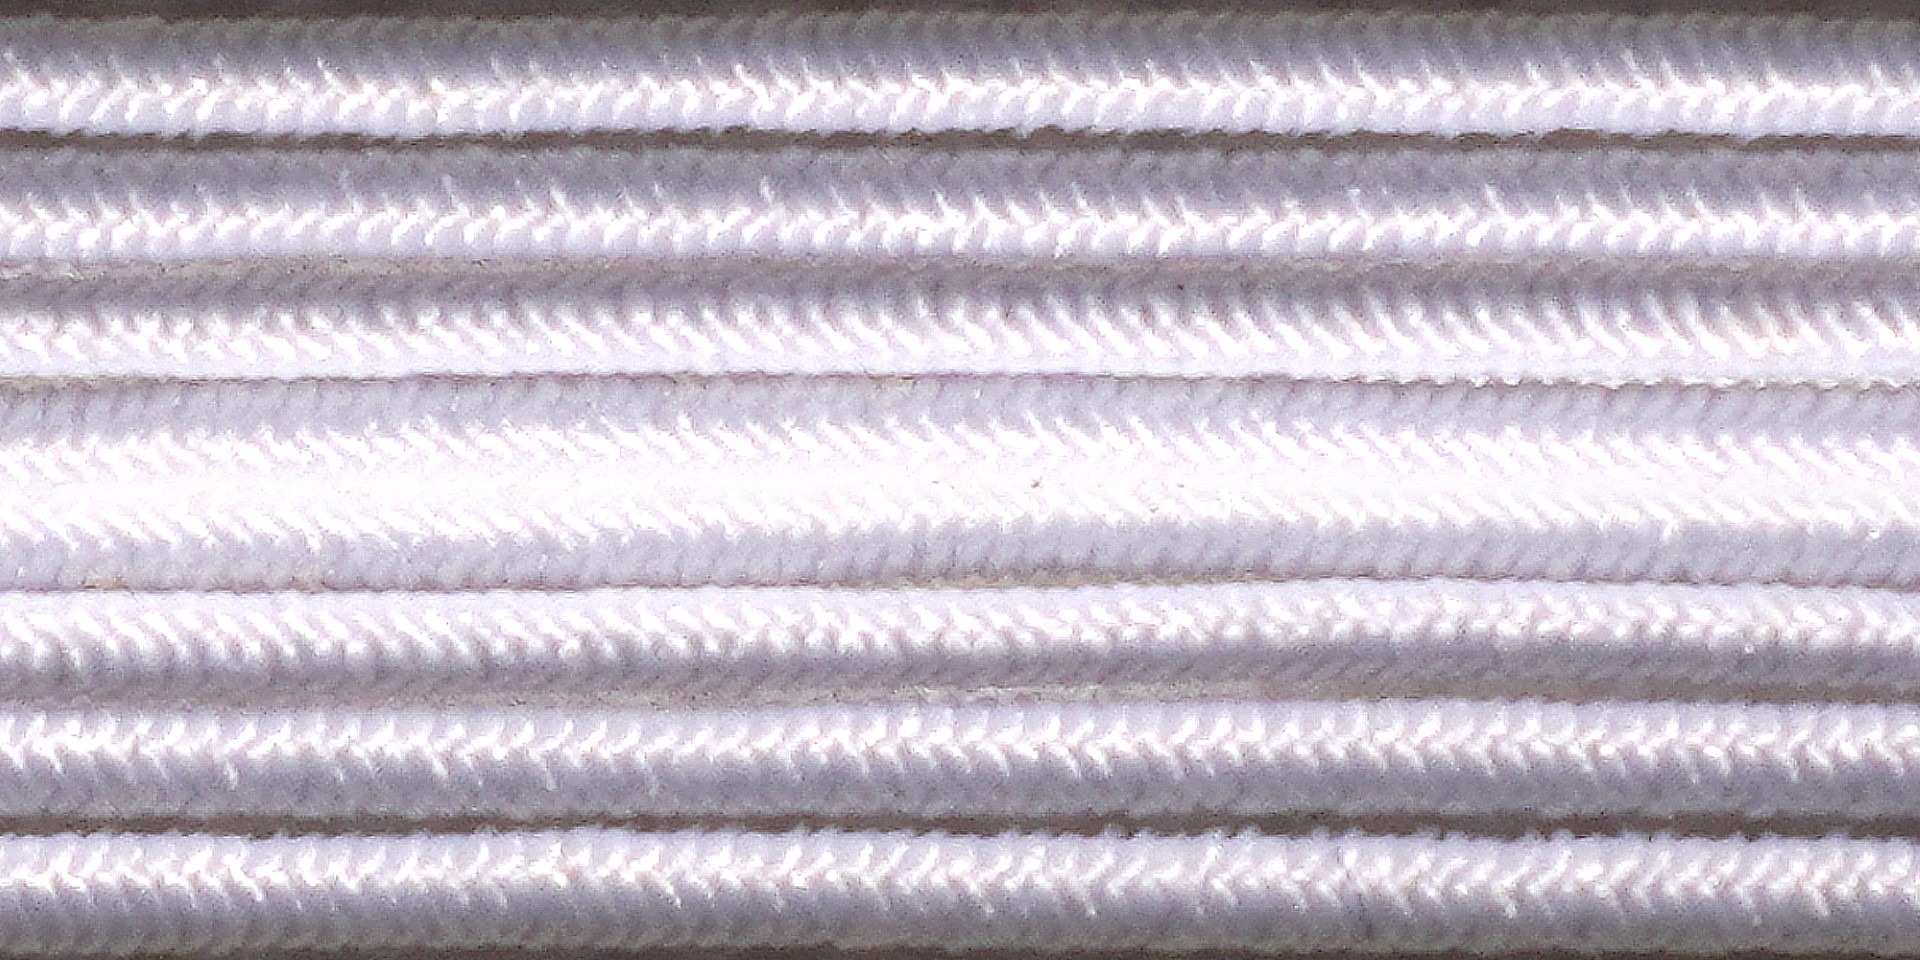 SC1 1mm white bungee cord